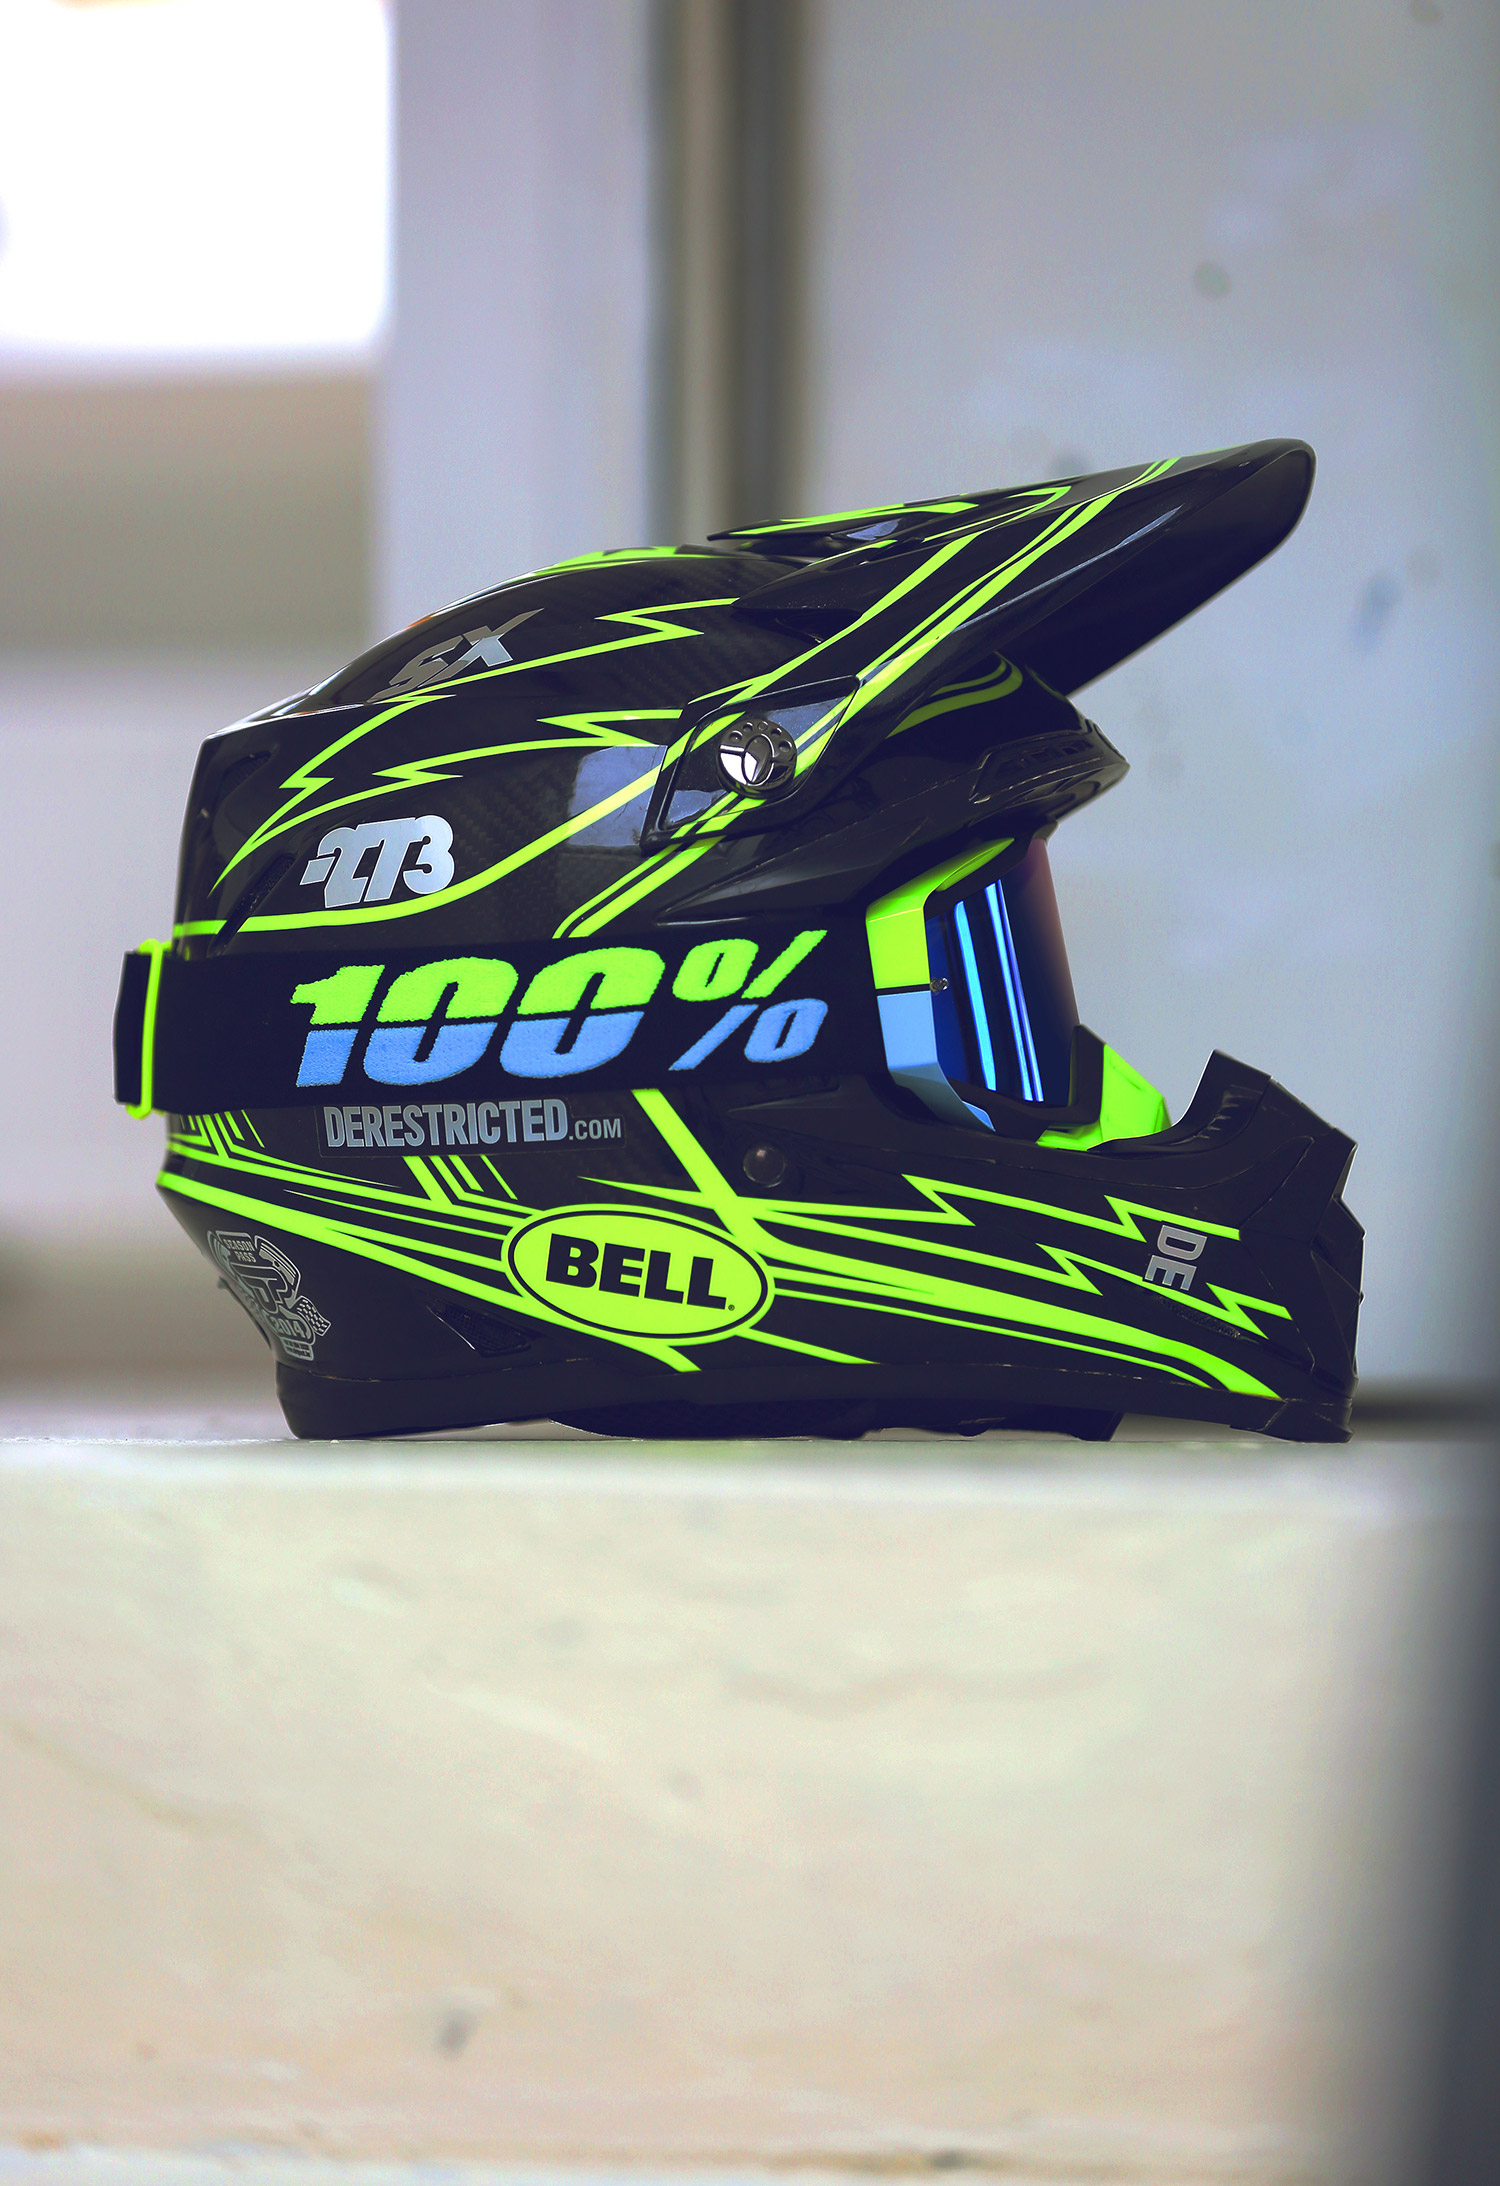 We got a few pairs of the new @ride100percent Spring goggle colorways. Not looking too shabby for sure! We will do a contest soon to give away a couple of pairs. Watch this space :) #ride100percent #bellhelmets